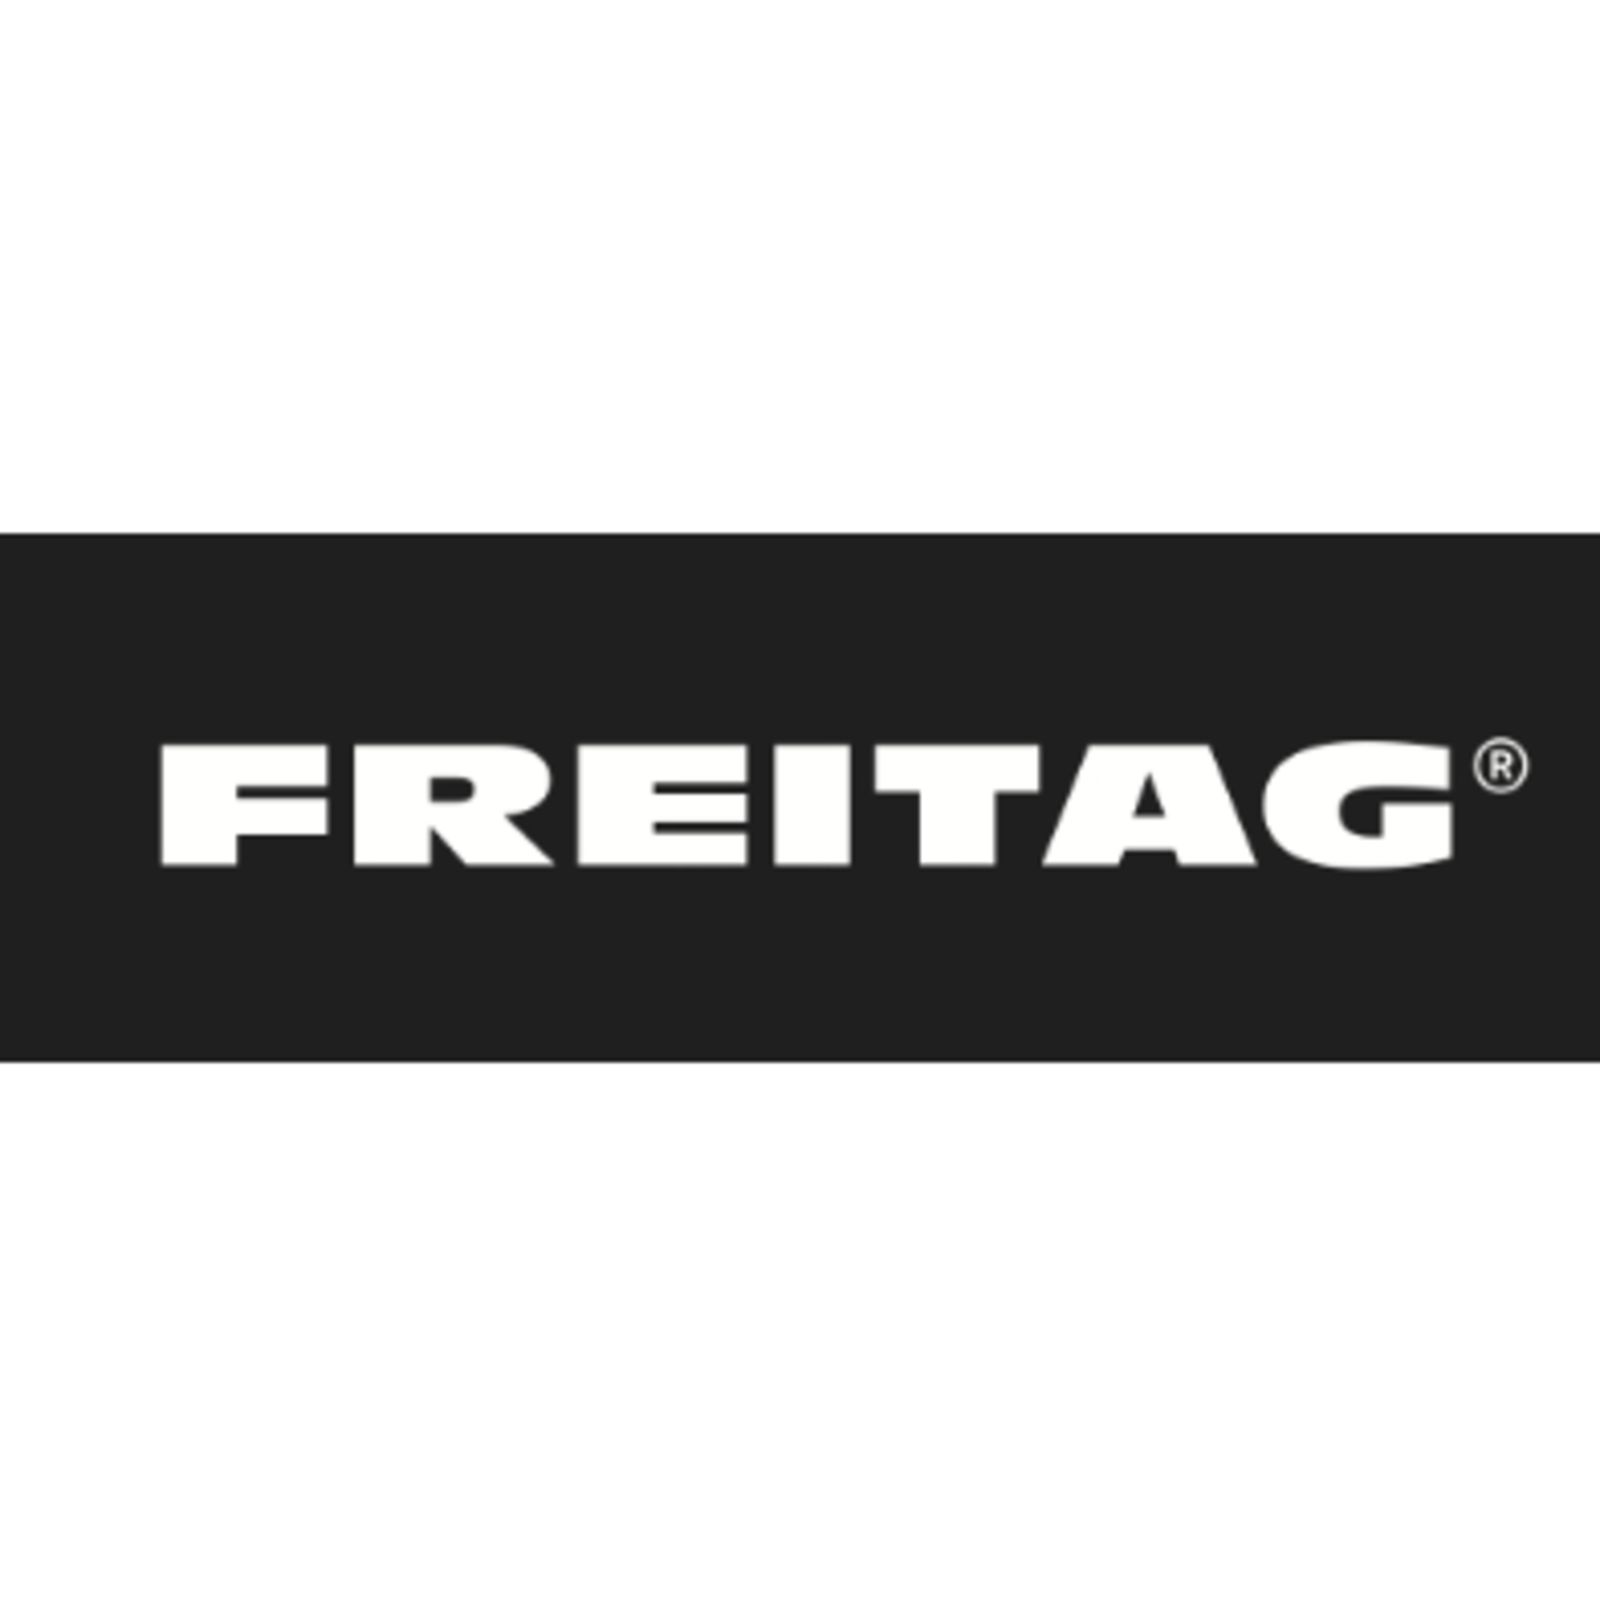 FREITAG REFERENCE